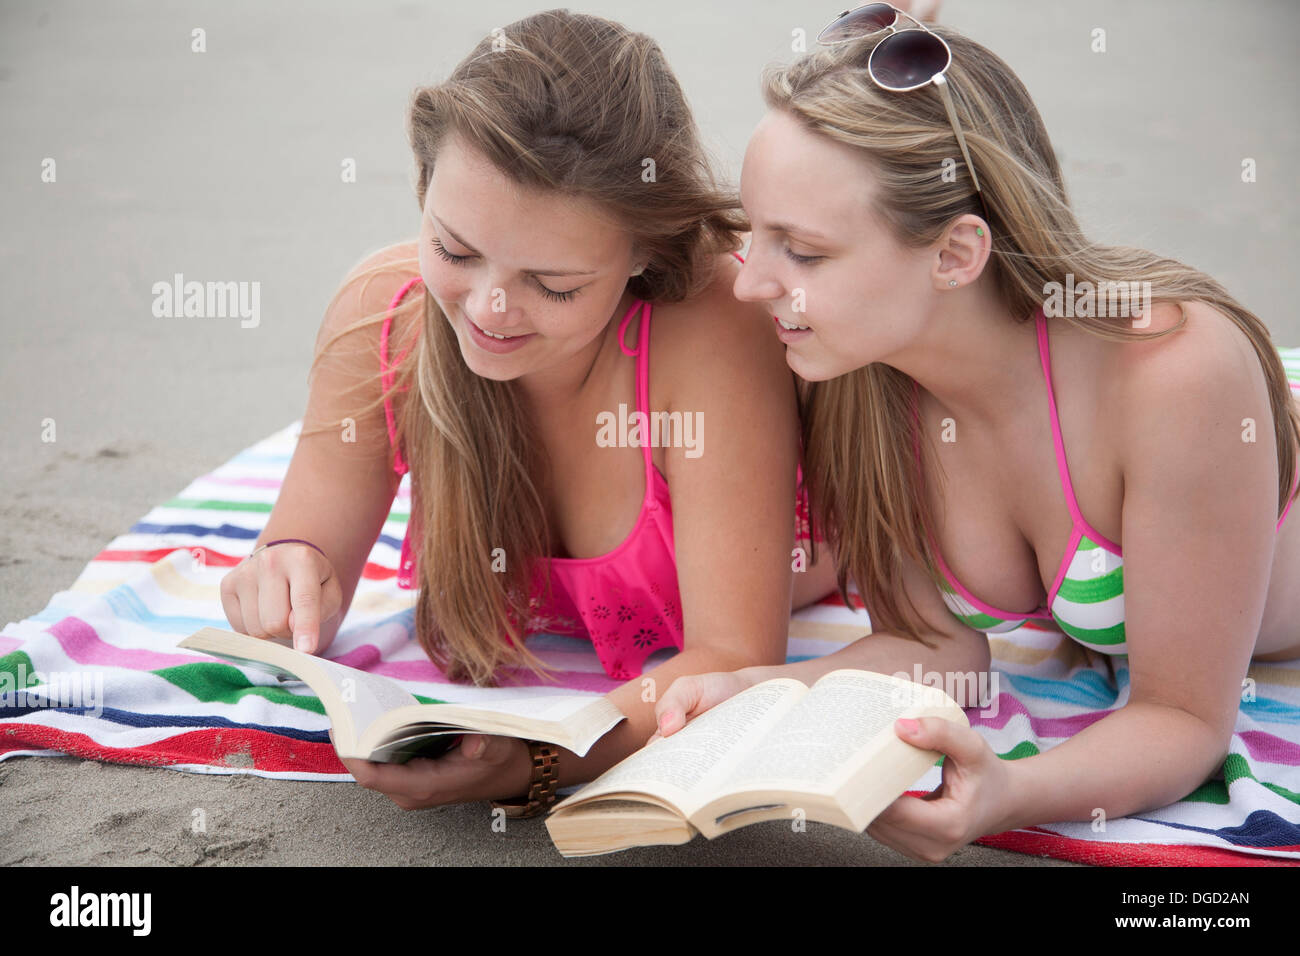 Young women reading books on beach - Stock Image